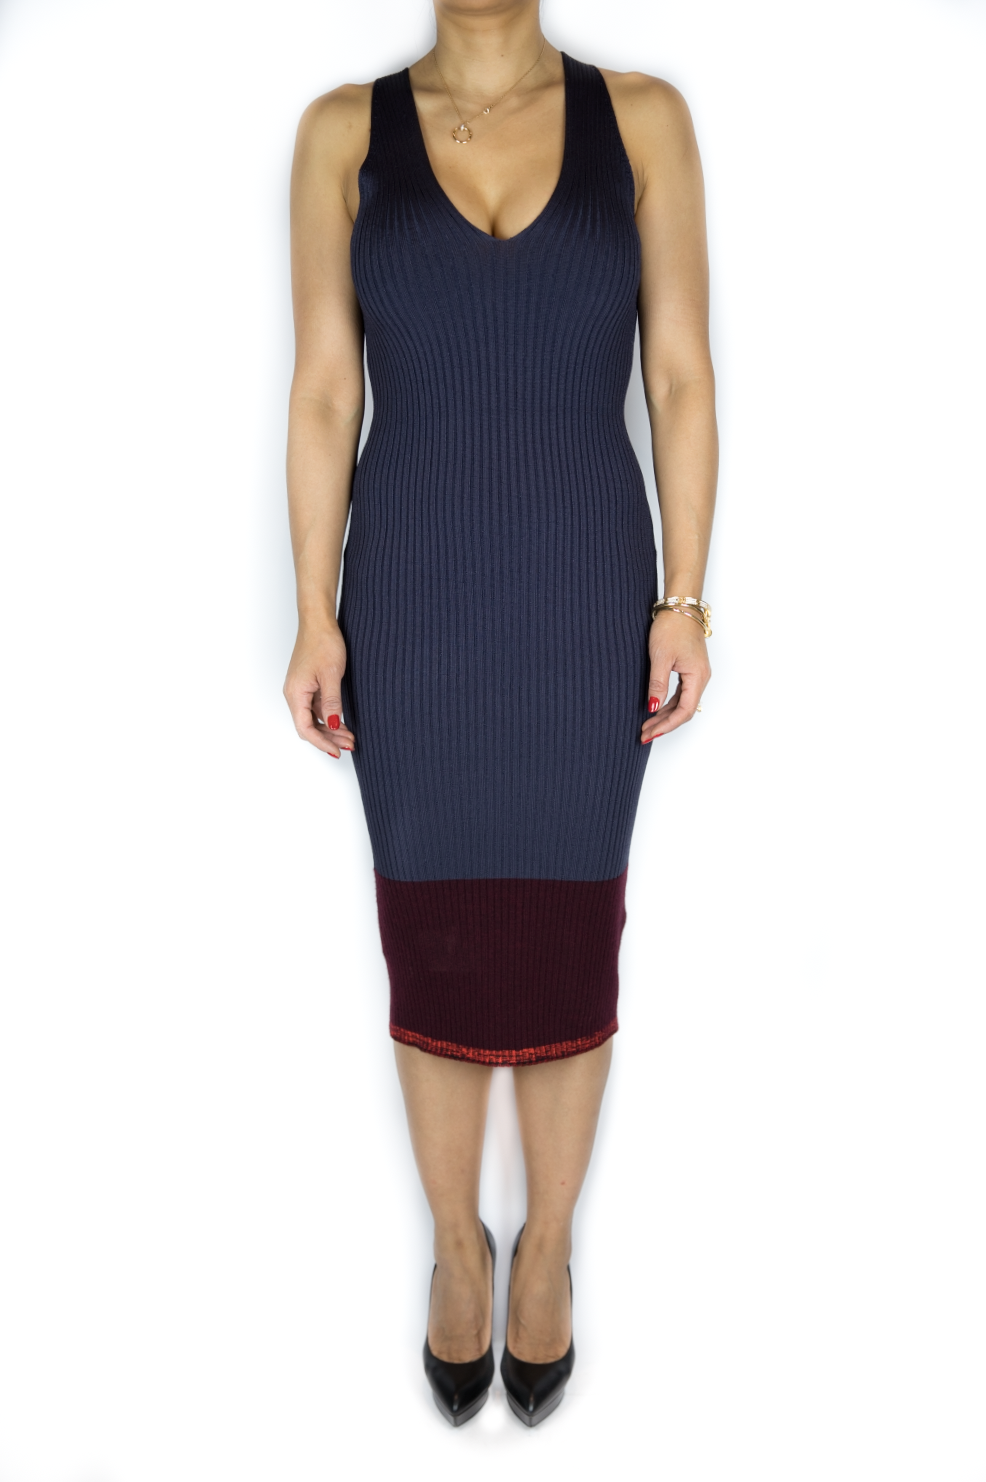 Rag & Bone - Dress - Size XXS